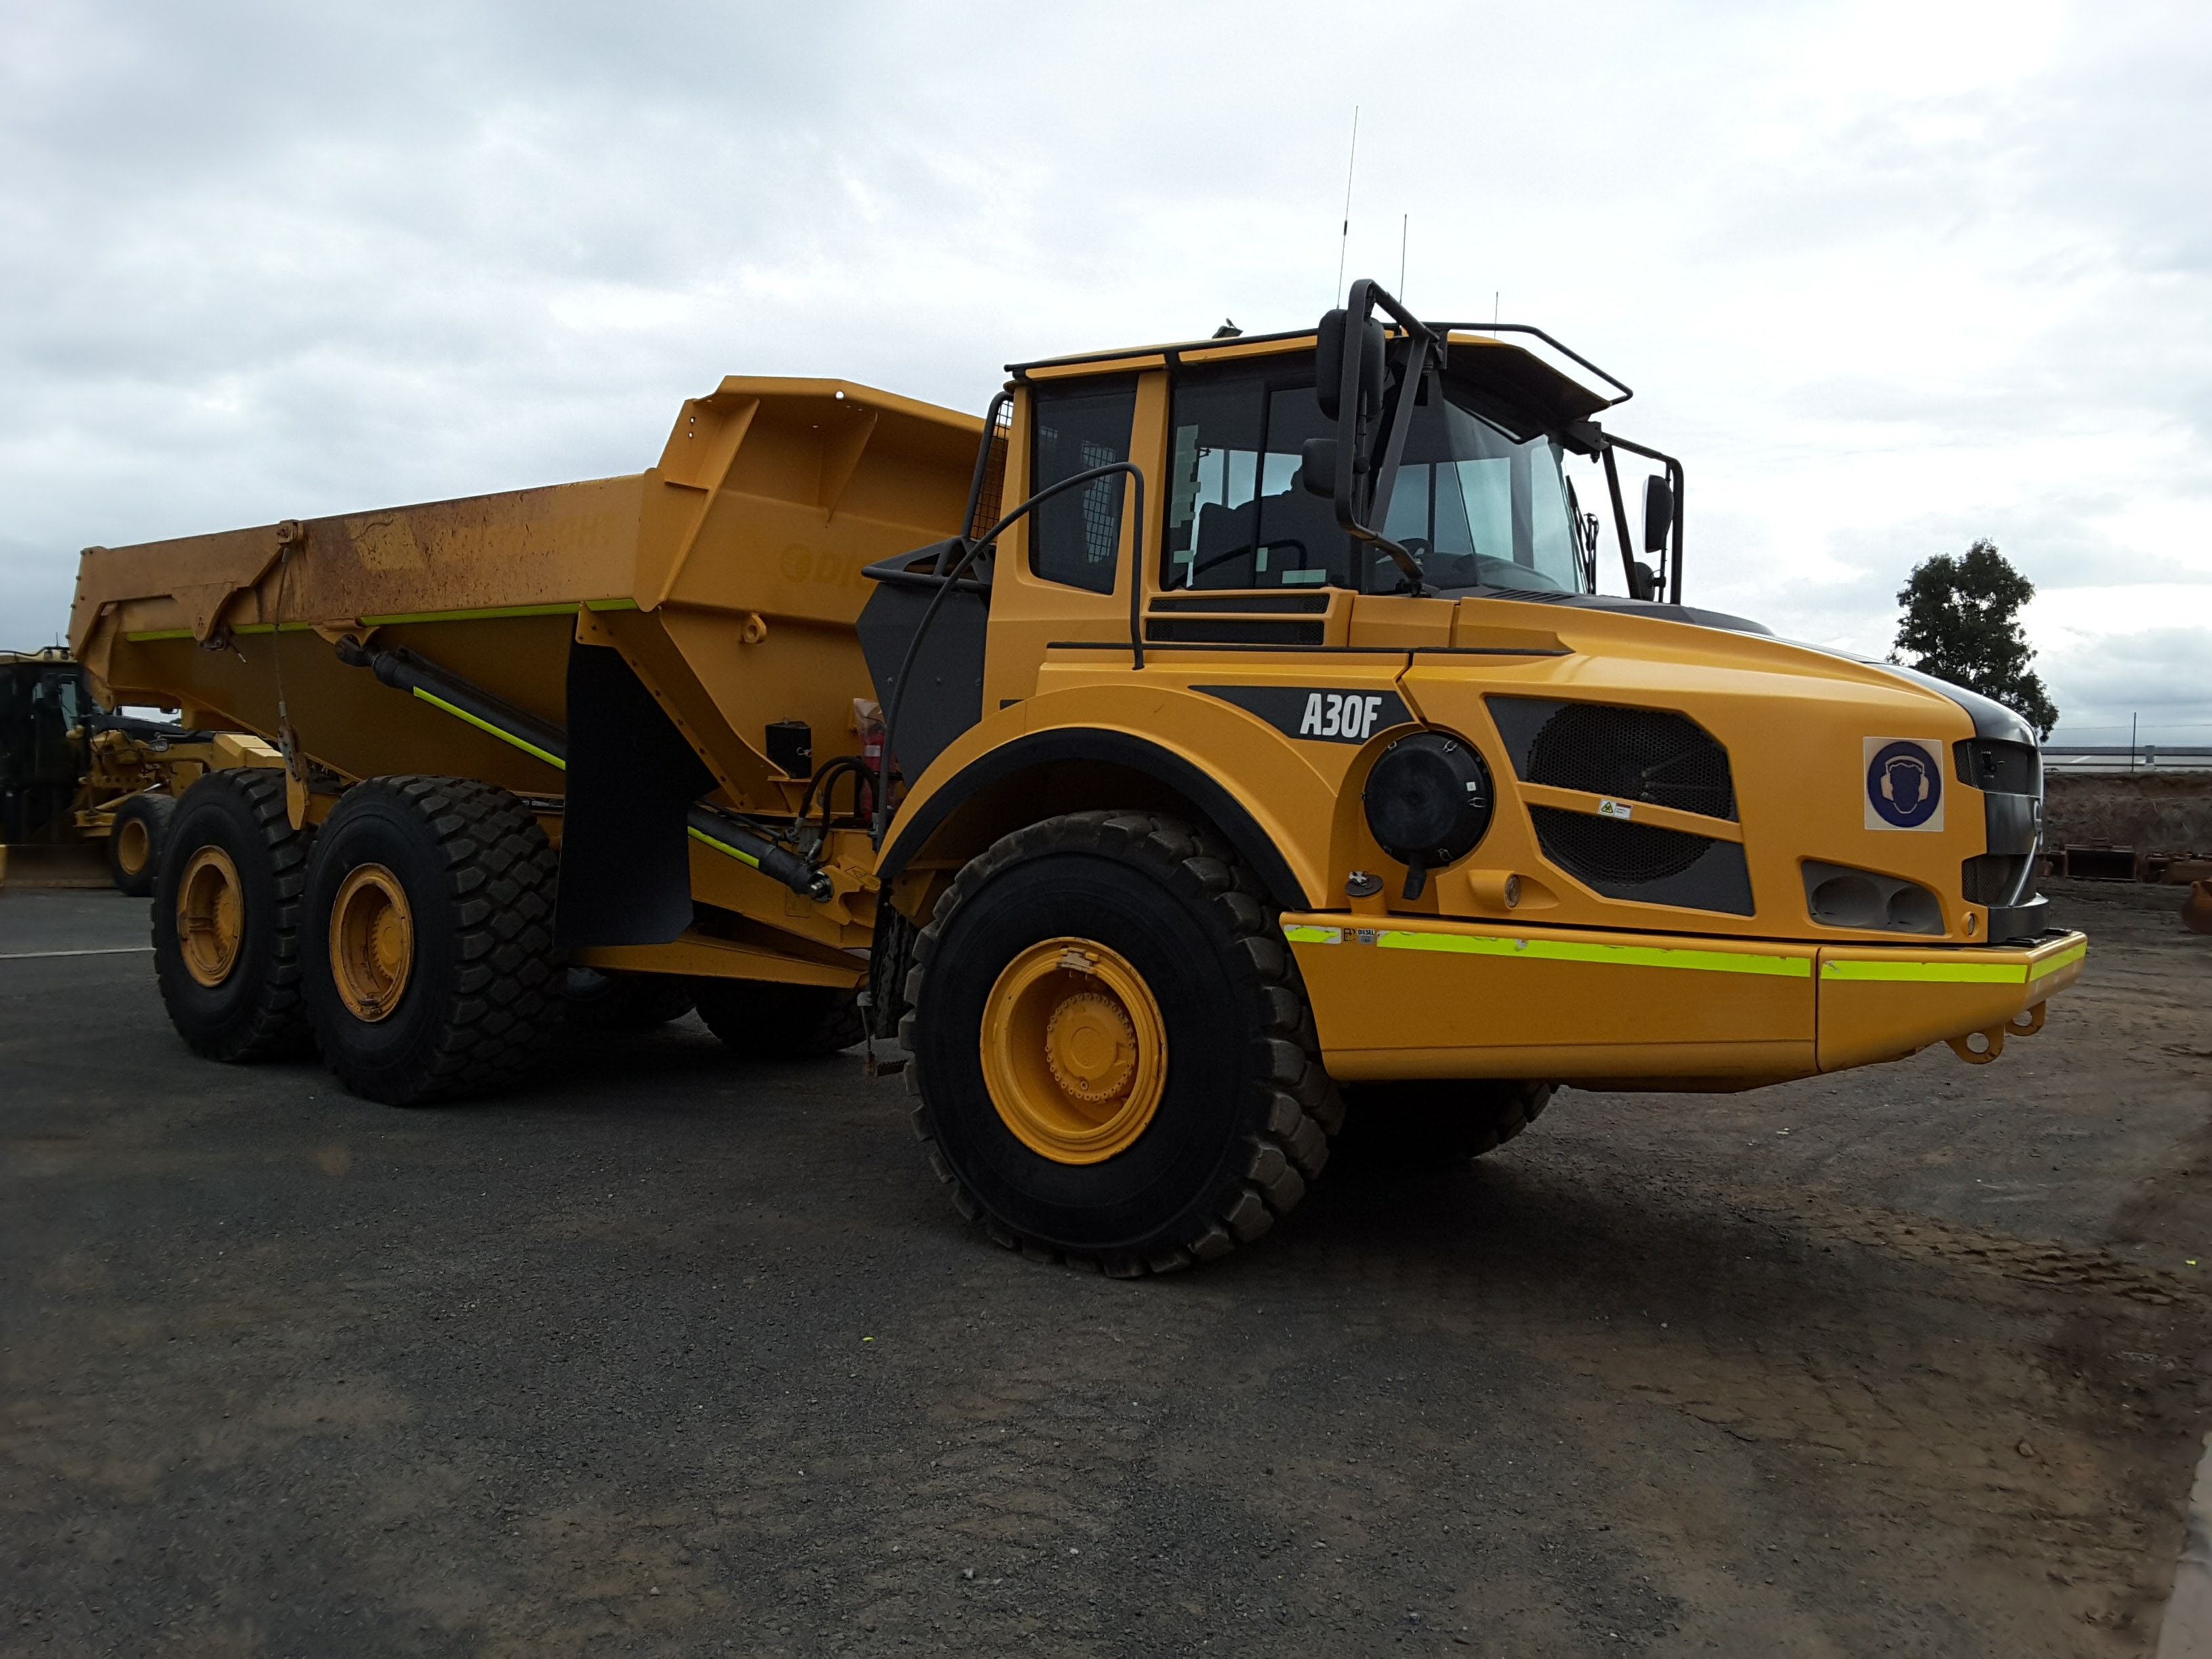 30t - 39t Dump Truck for hire - RediPlant